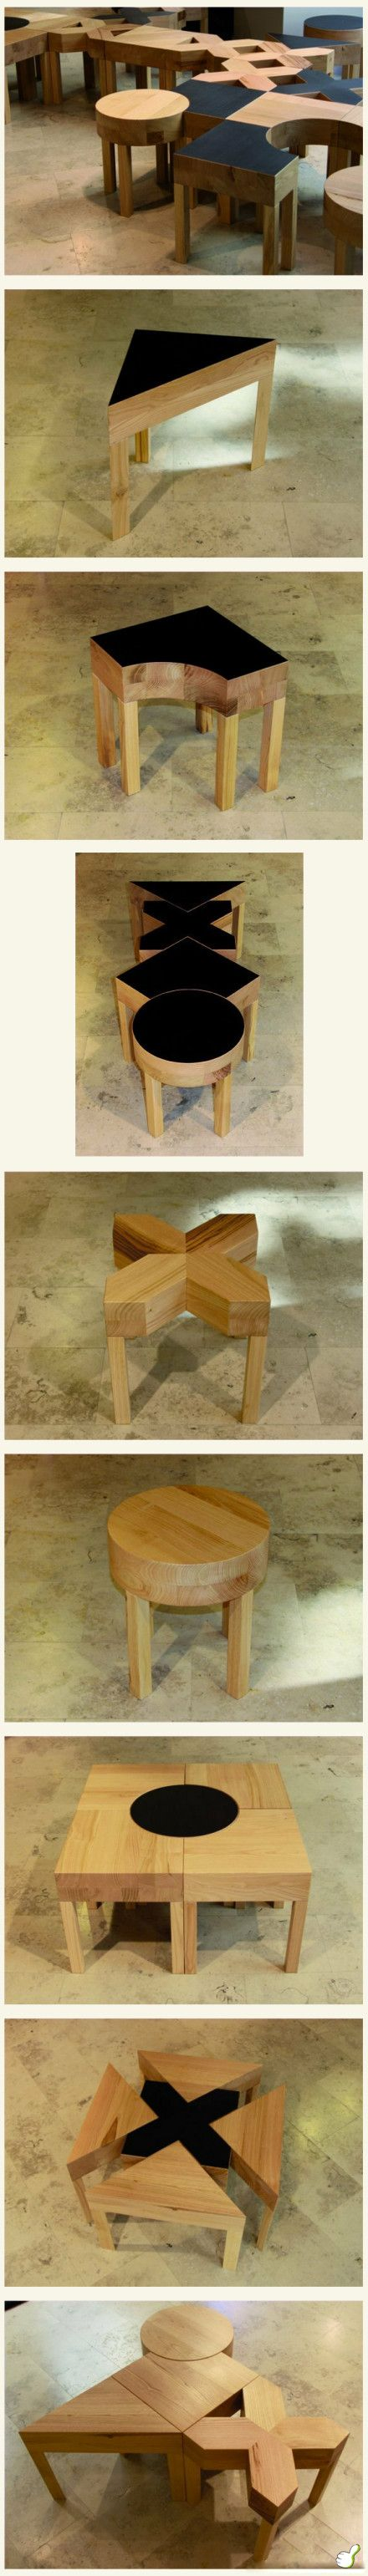 Flexible tables i think i could make these